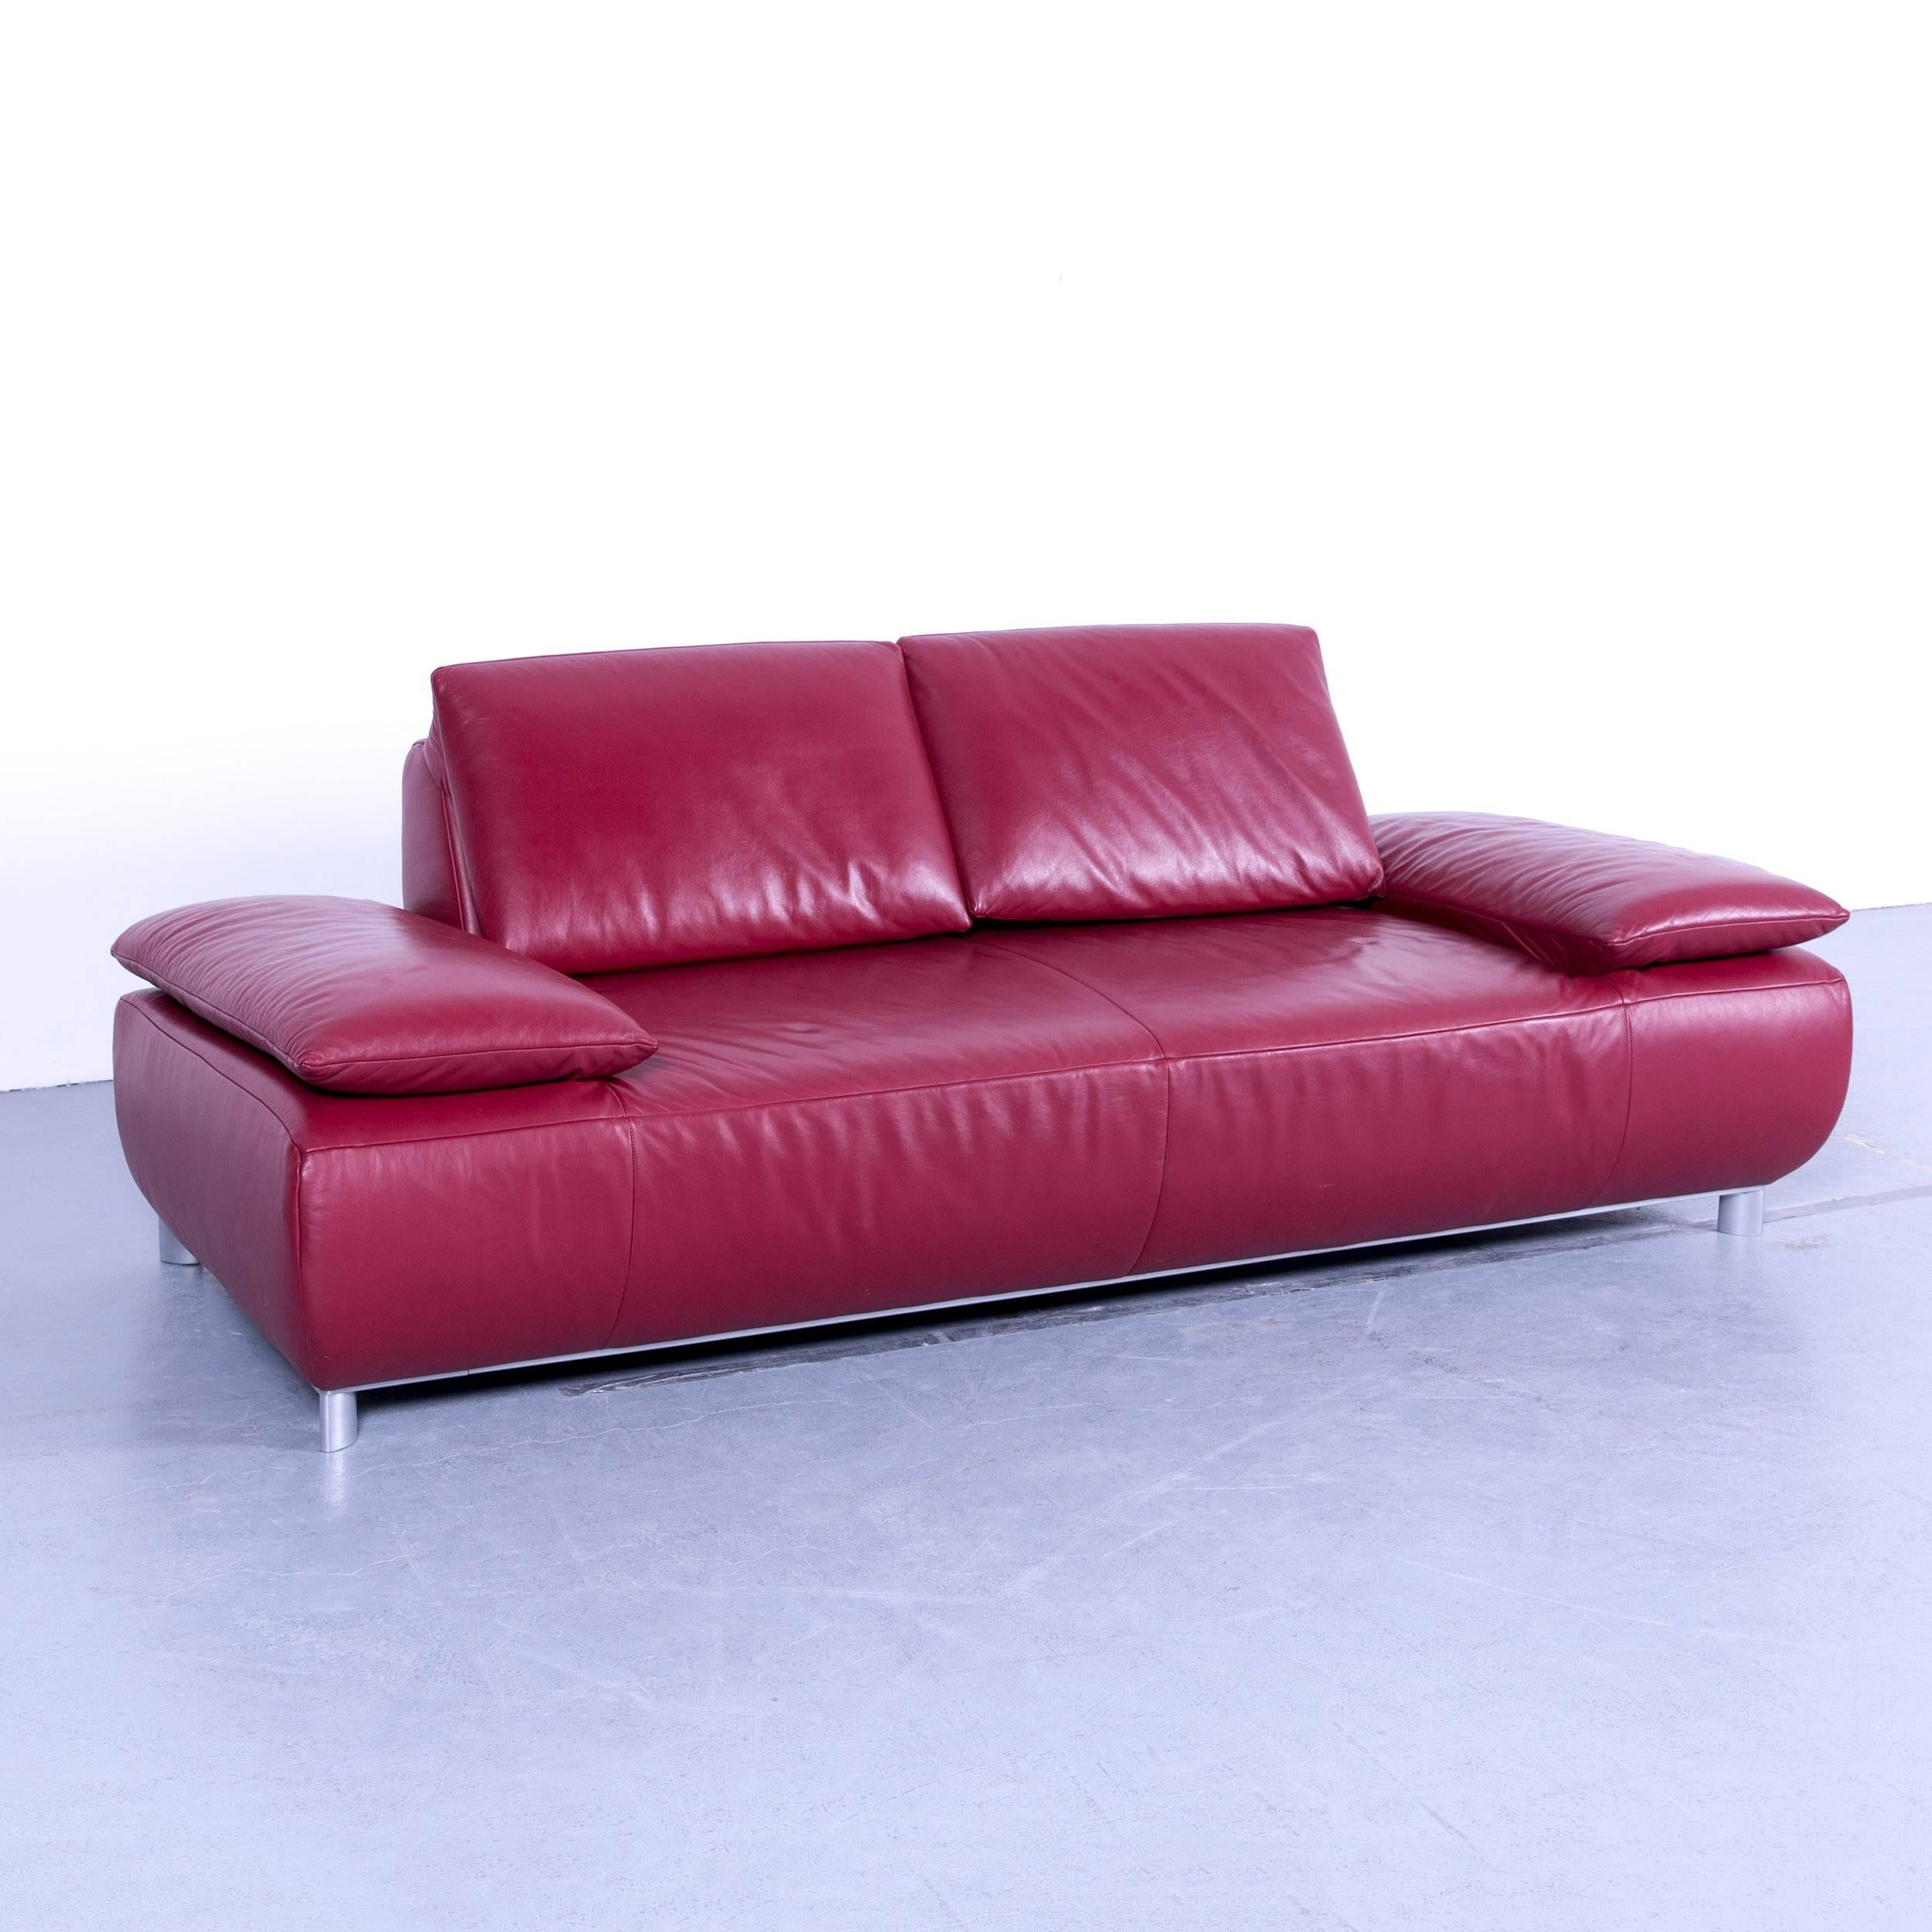 Amüsant Sofa Und Sessel Sammlung Von Koinor Volare Designer Leather Red Three-seat Couch,